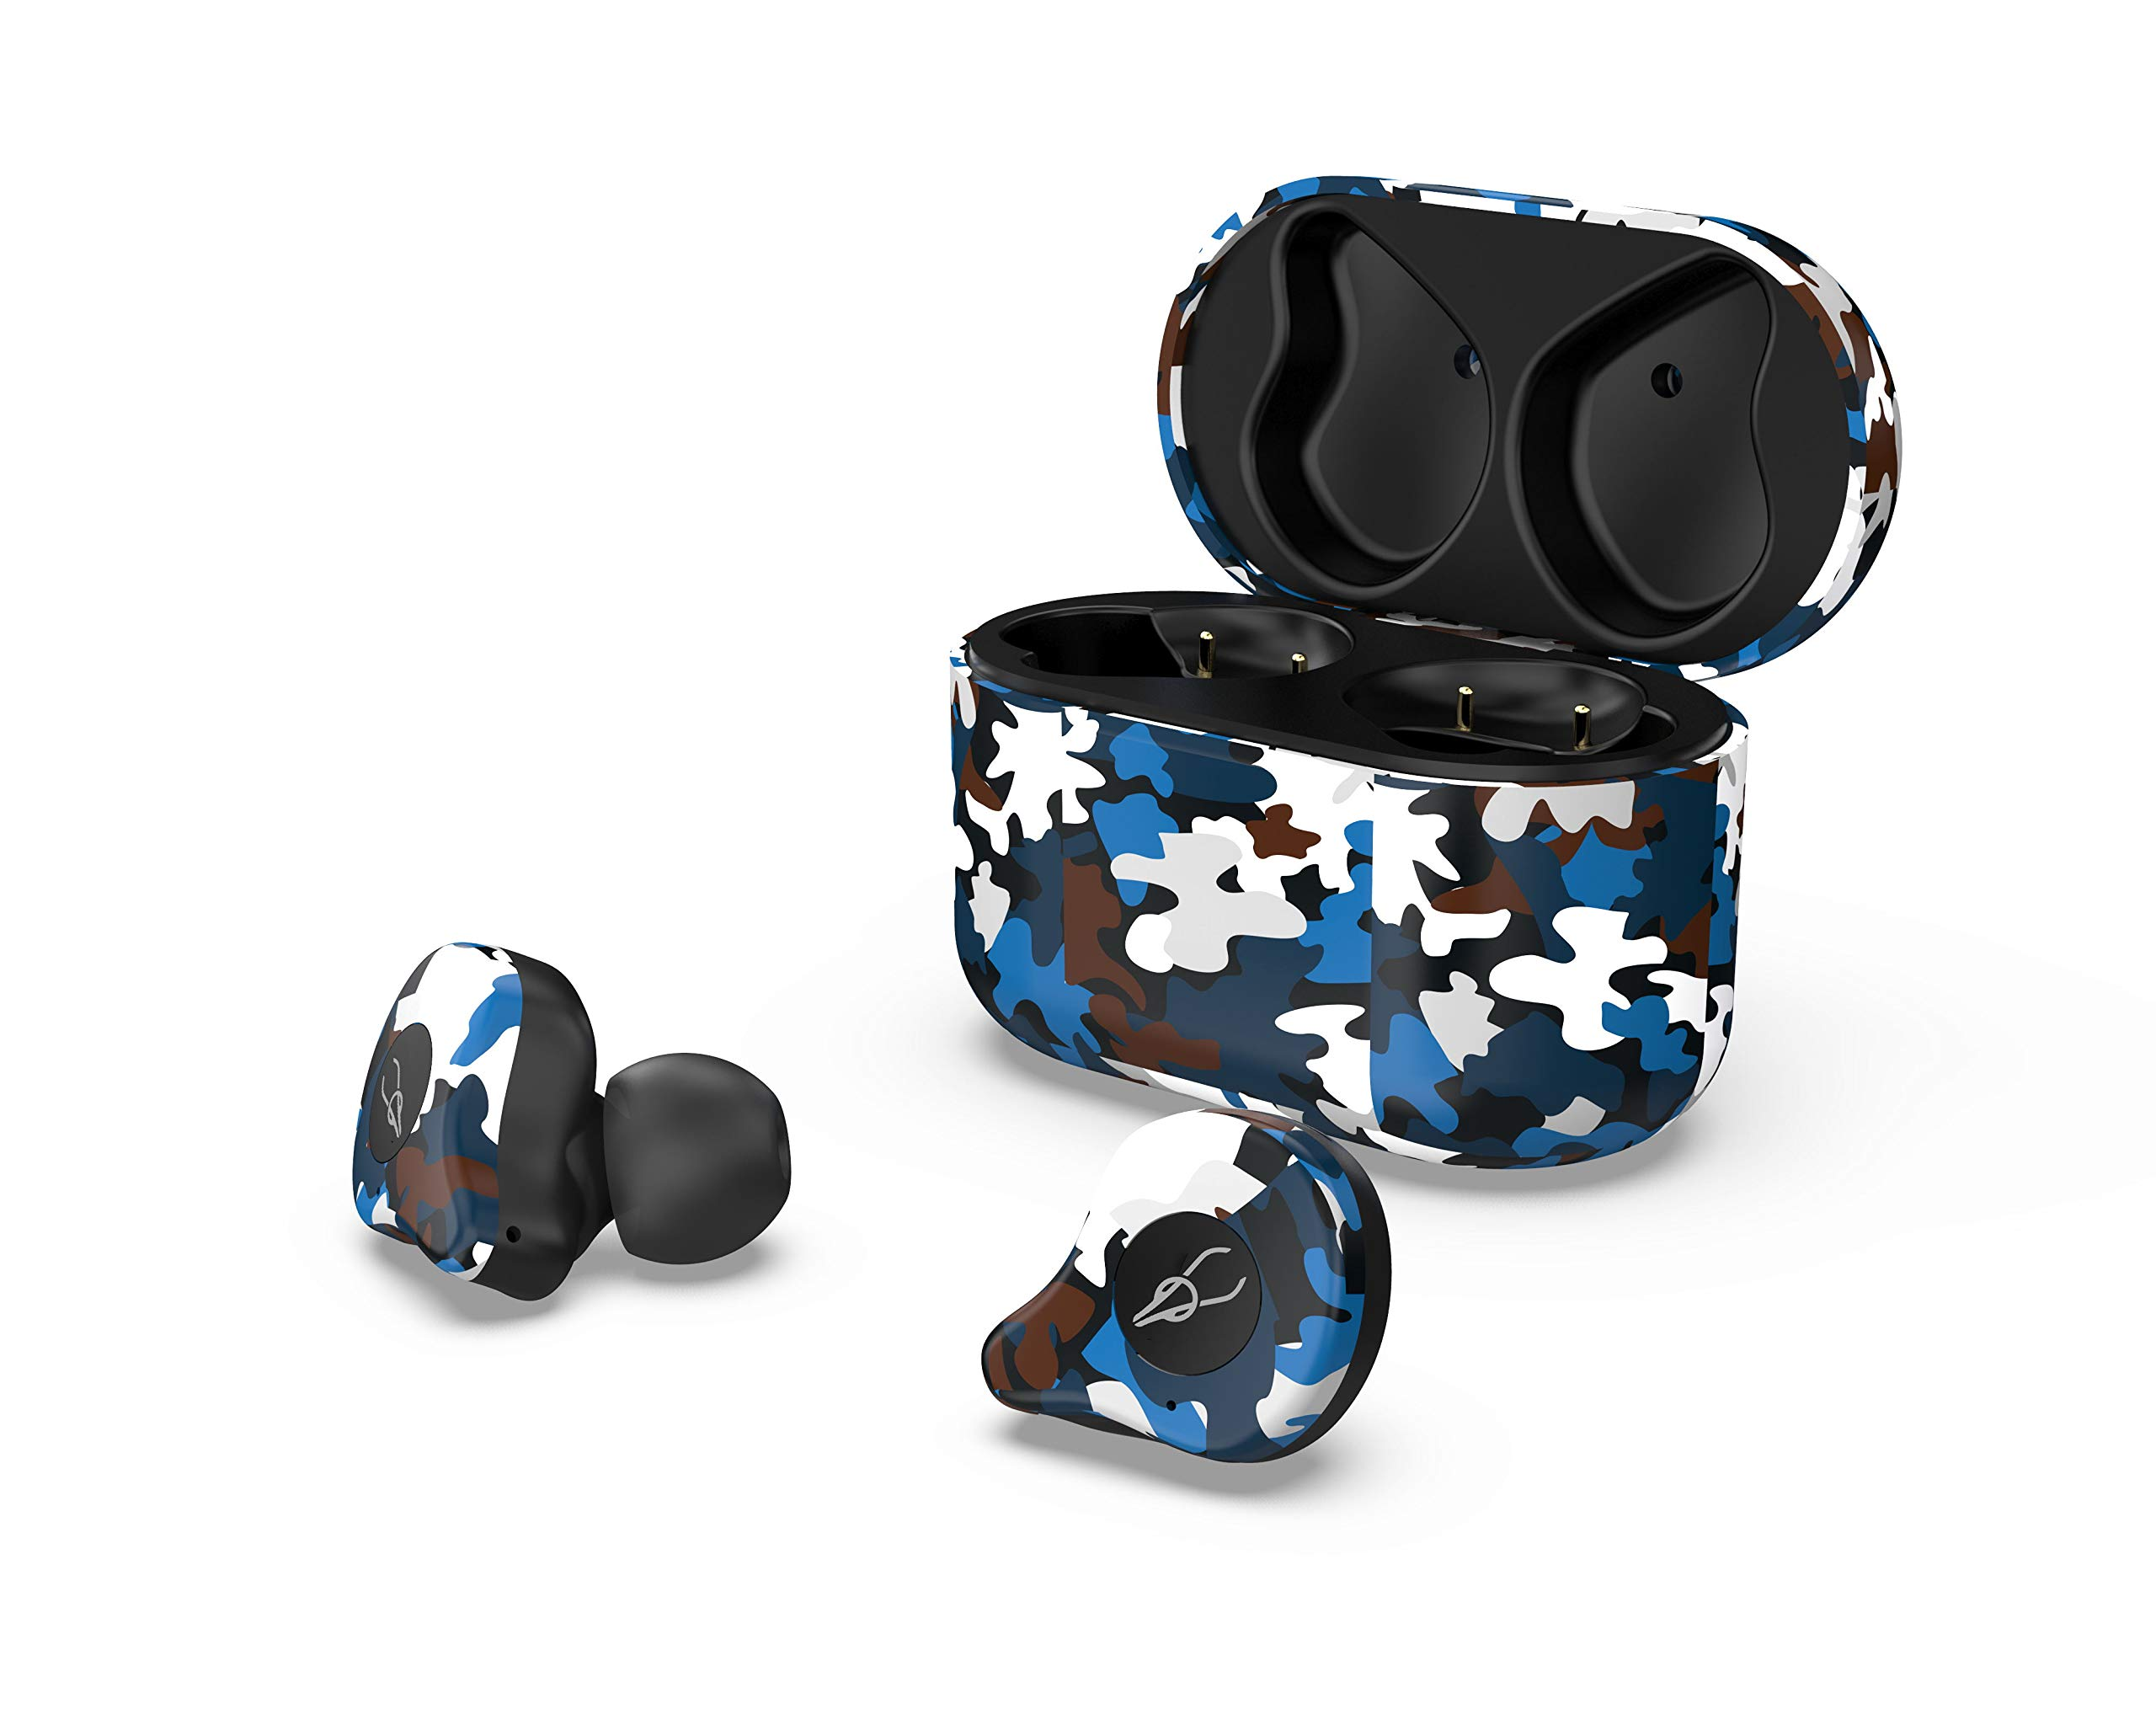 RONSHIN Headphones/Earphones/Earbuds/Headsets Sabbat E12 Ultra Camouflage TWS Bluetooth 5.0 Earphone Stereo Wireless Sport Earbuds Caribbean by RONSHIN